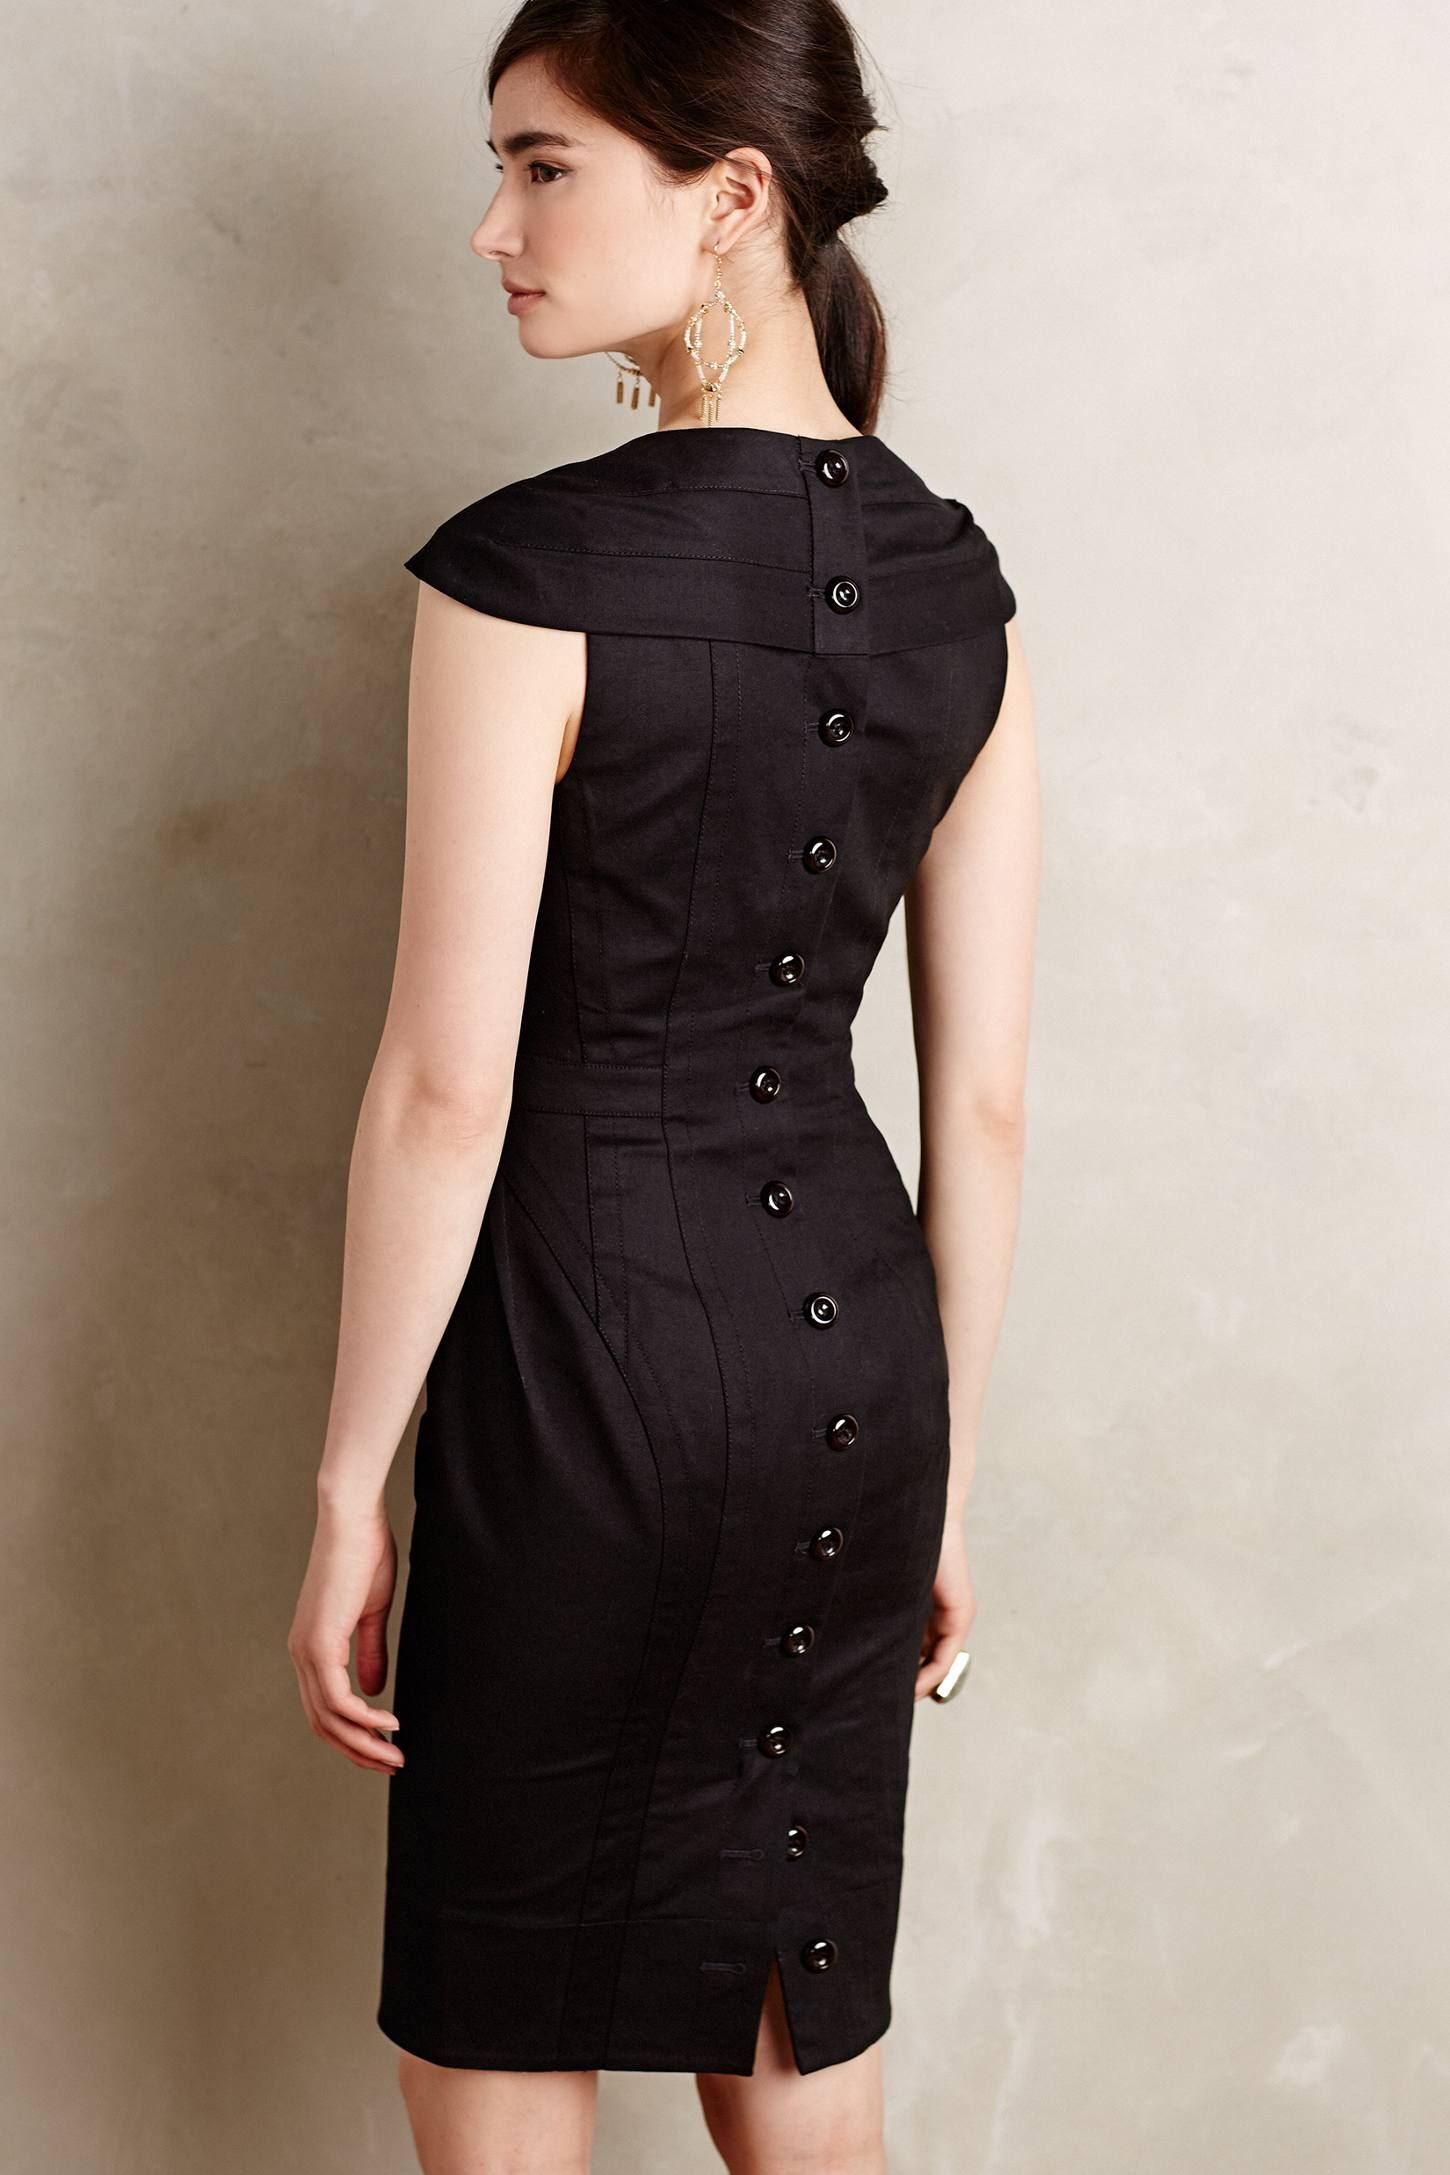 bcbc655d5c2d Buy Byron Lars Beauty Mark Women's Black Button-back Pencil Dress, starting  at $110. Similar products also available. SALE now on!